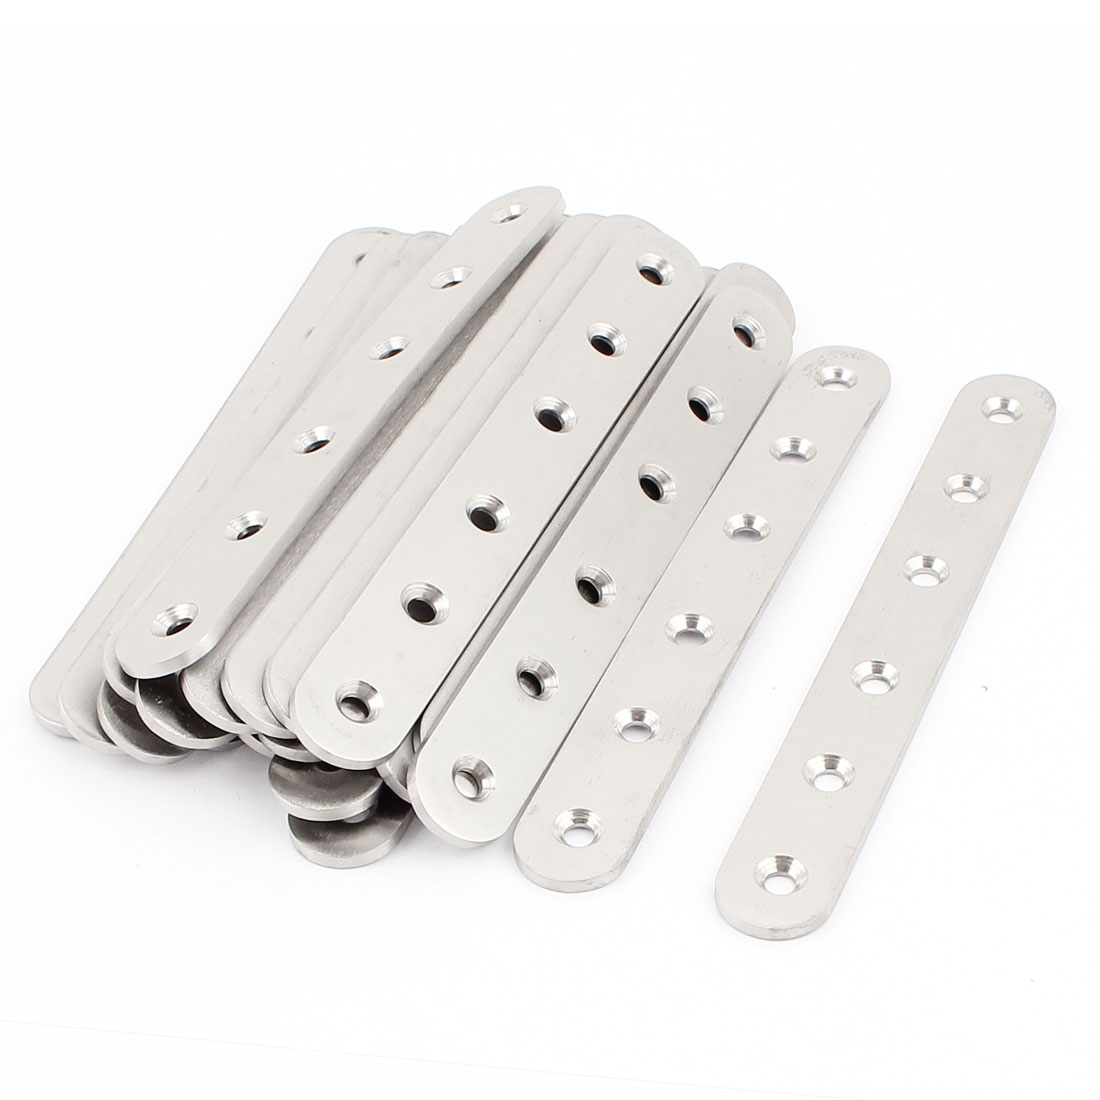 20 Pcs 155mm x 3mm Flat Brackets Straight Mending Plates Repair Fixing Joining